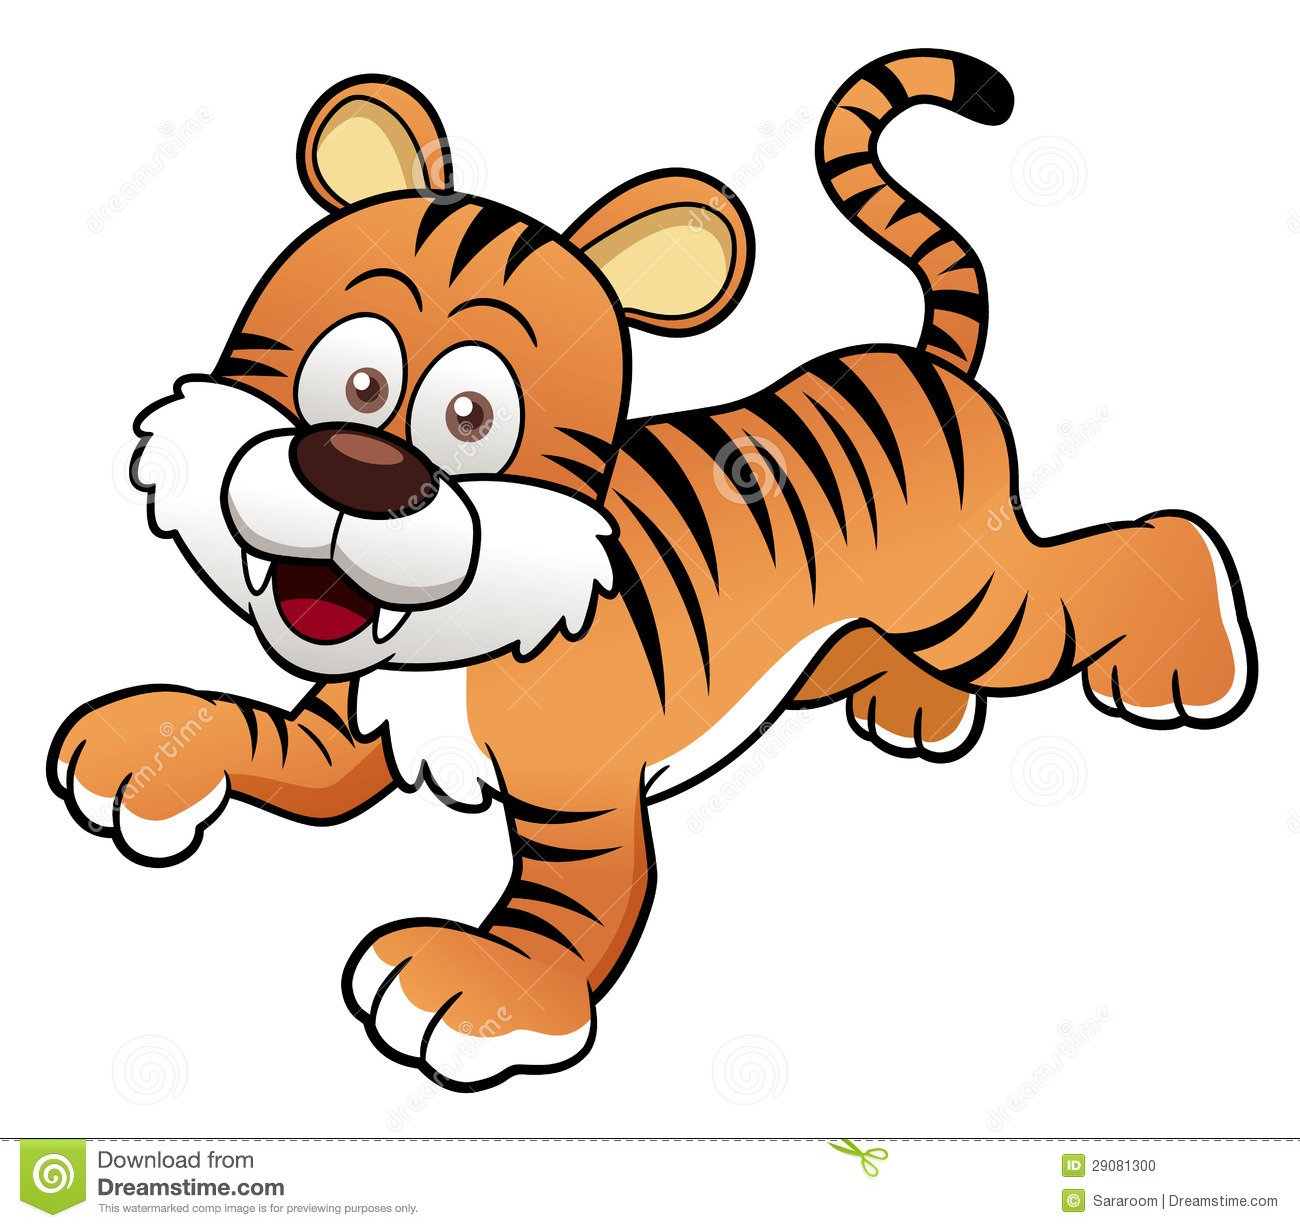 Animated tiger wallpaper wallpapersafari